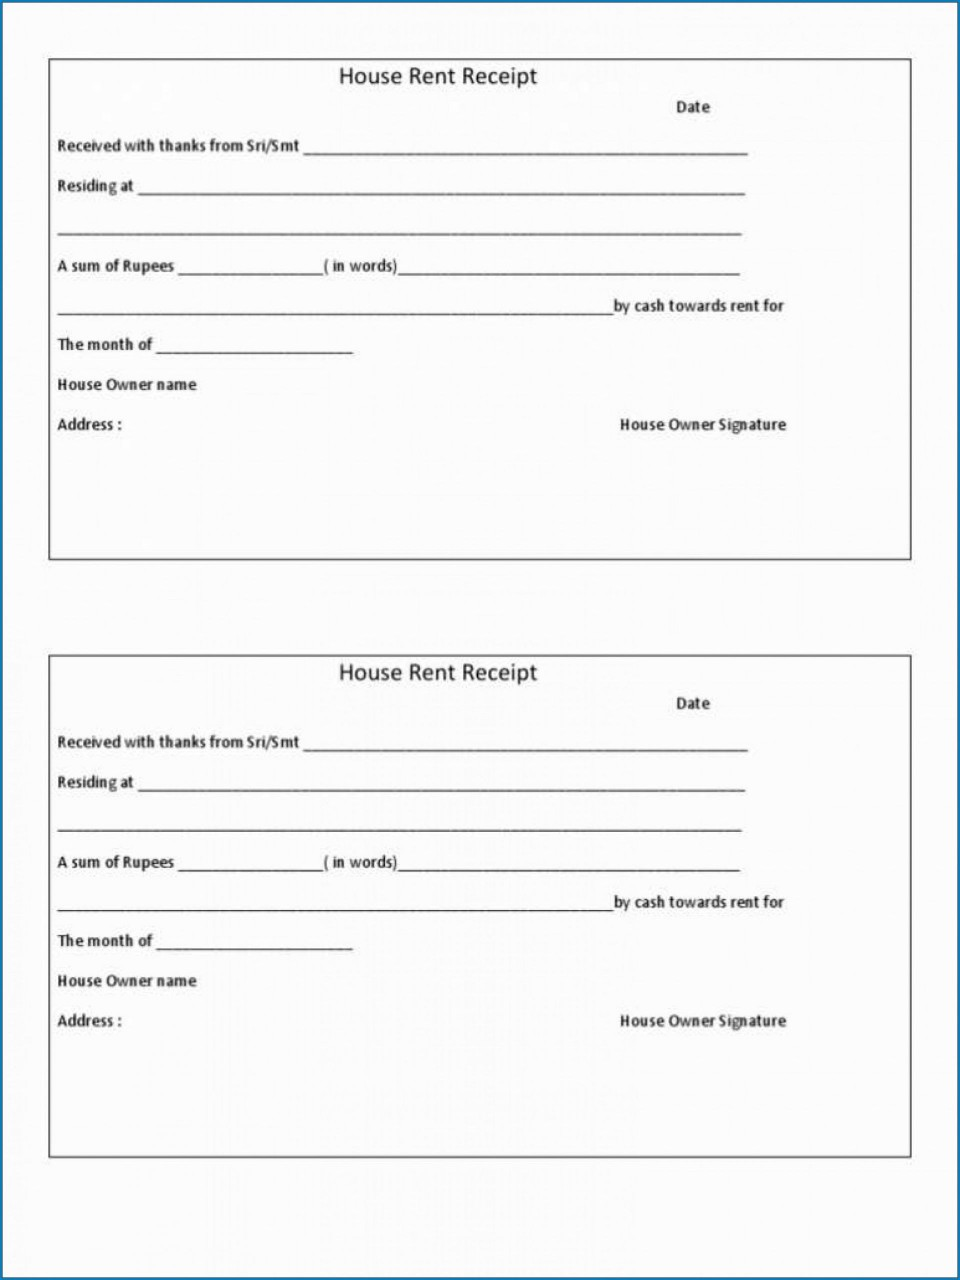 009 Magnificent Rent Receipt Sample Doc Design  Template India Format Free Download960